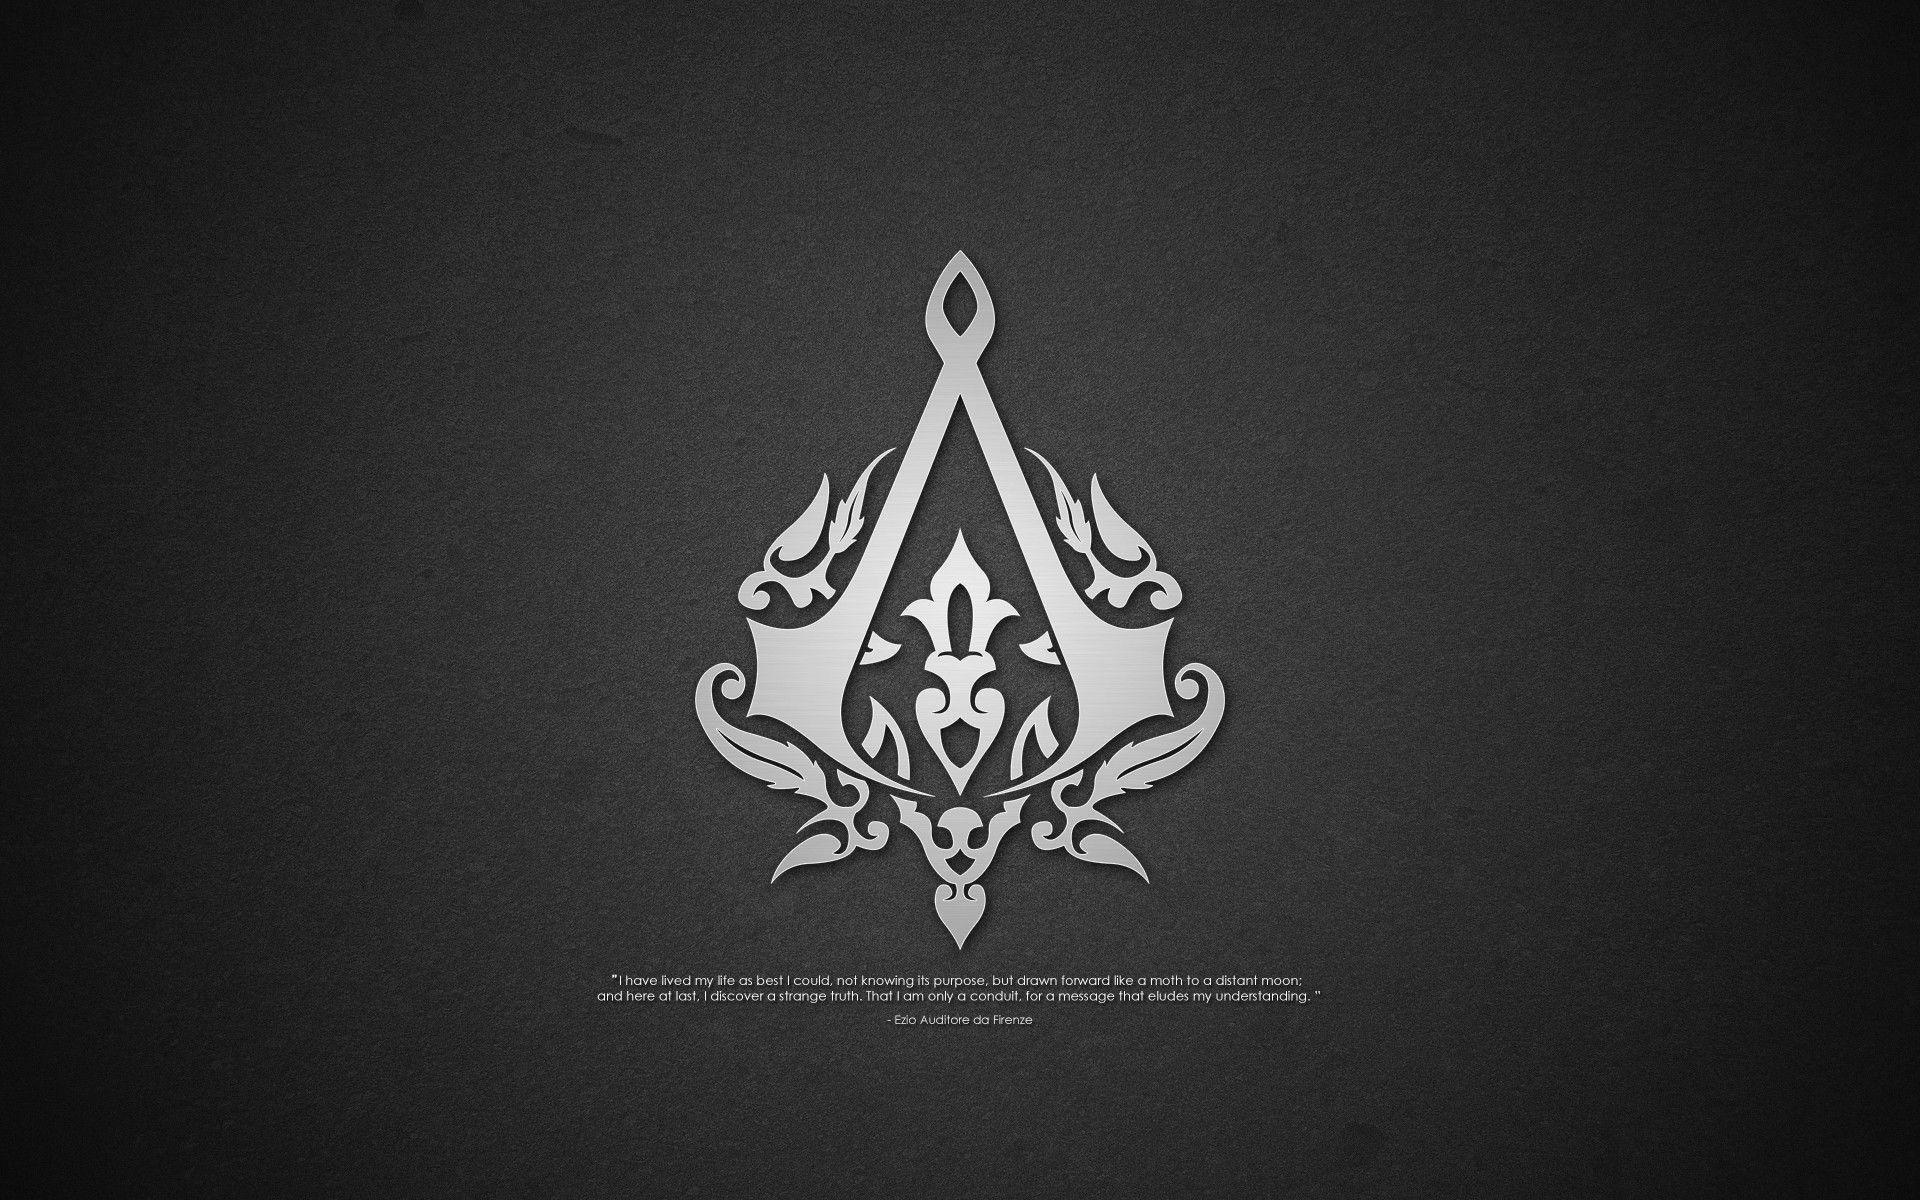 Assassin S Creed Logo Wallpapers Top Free Assassin S Creed Logo Backgrounds Wallpaperaccess